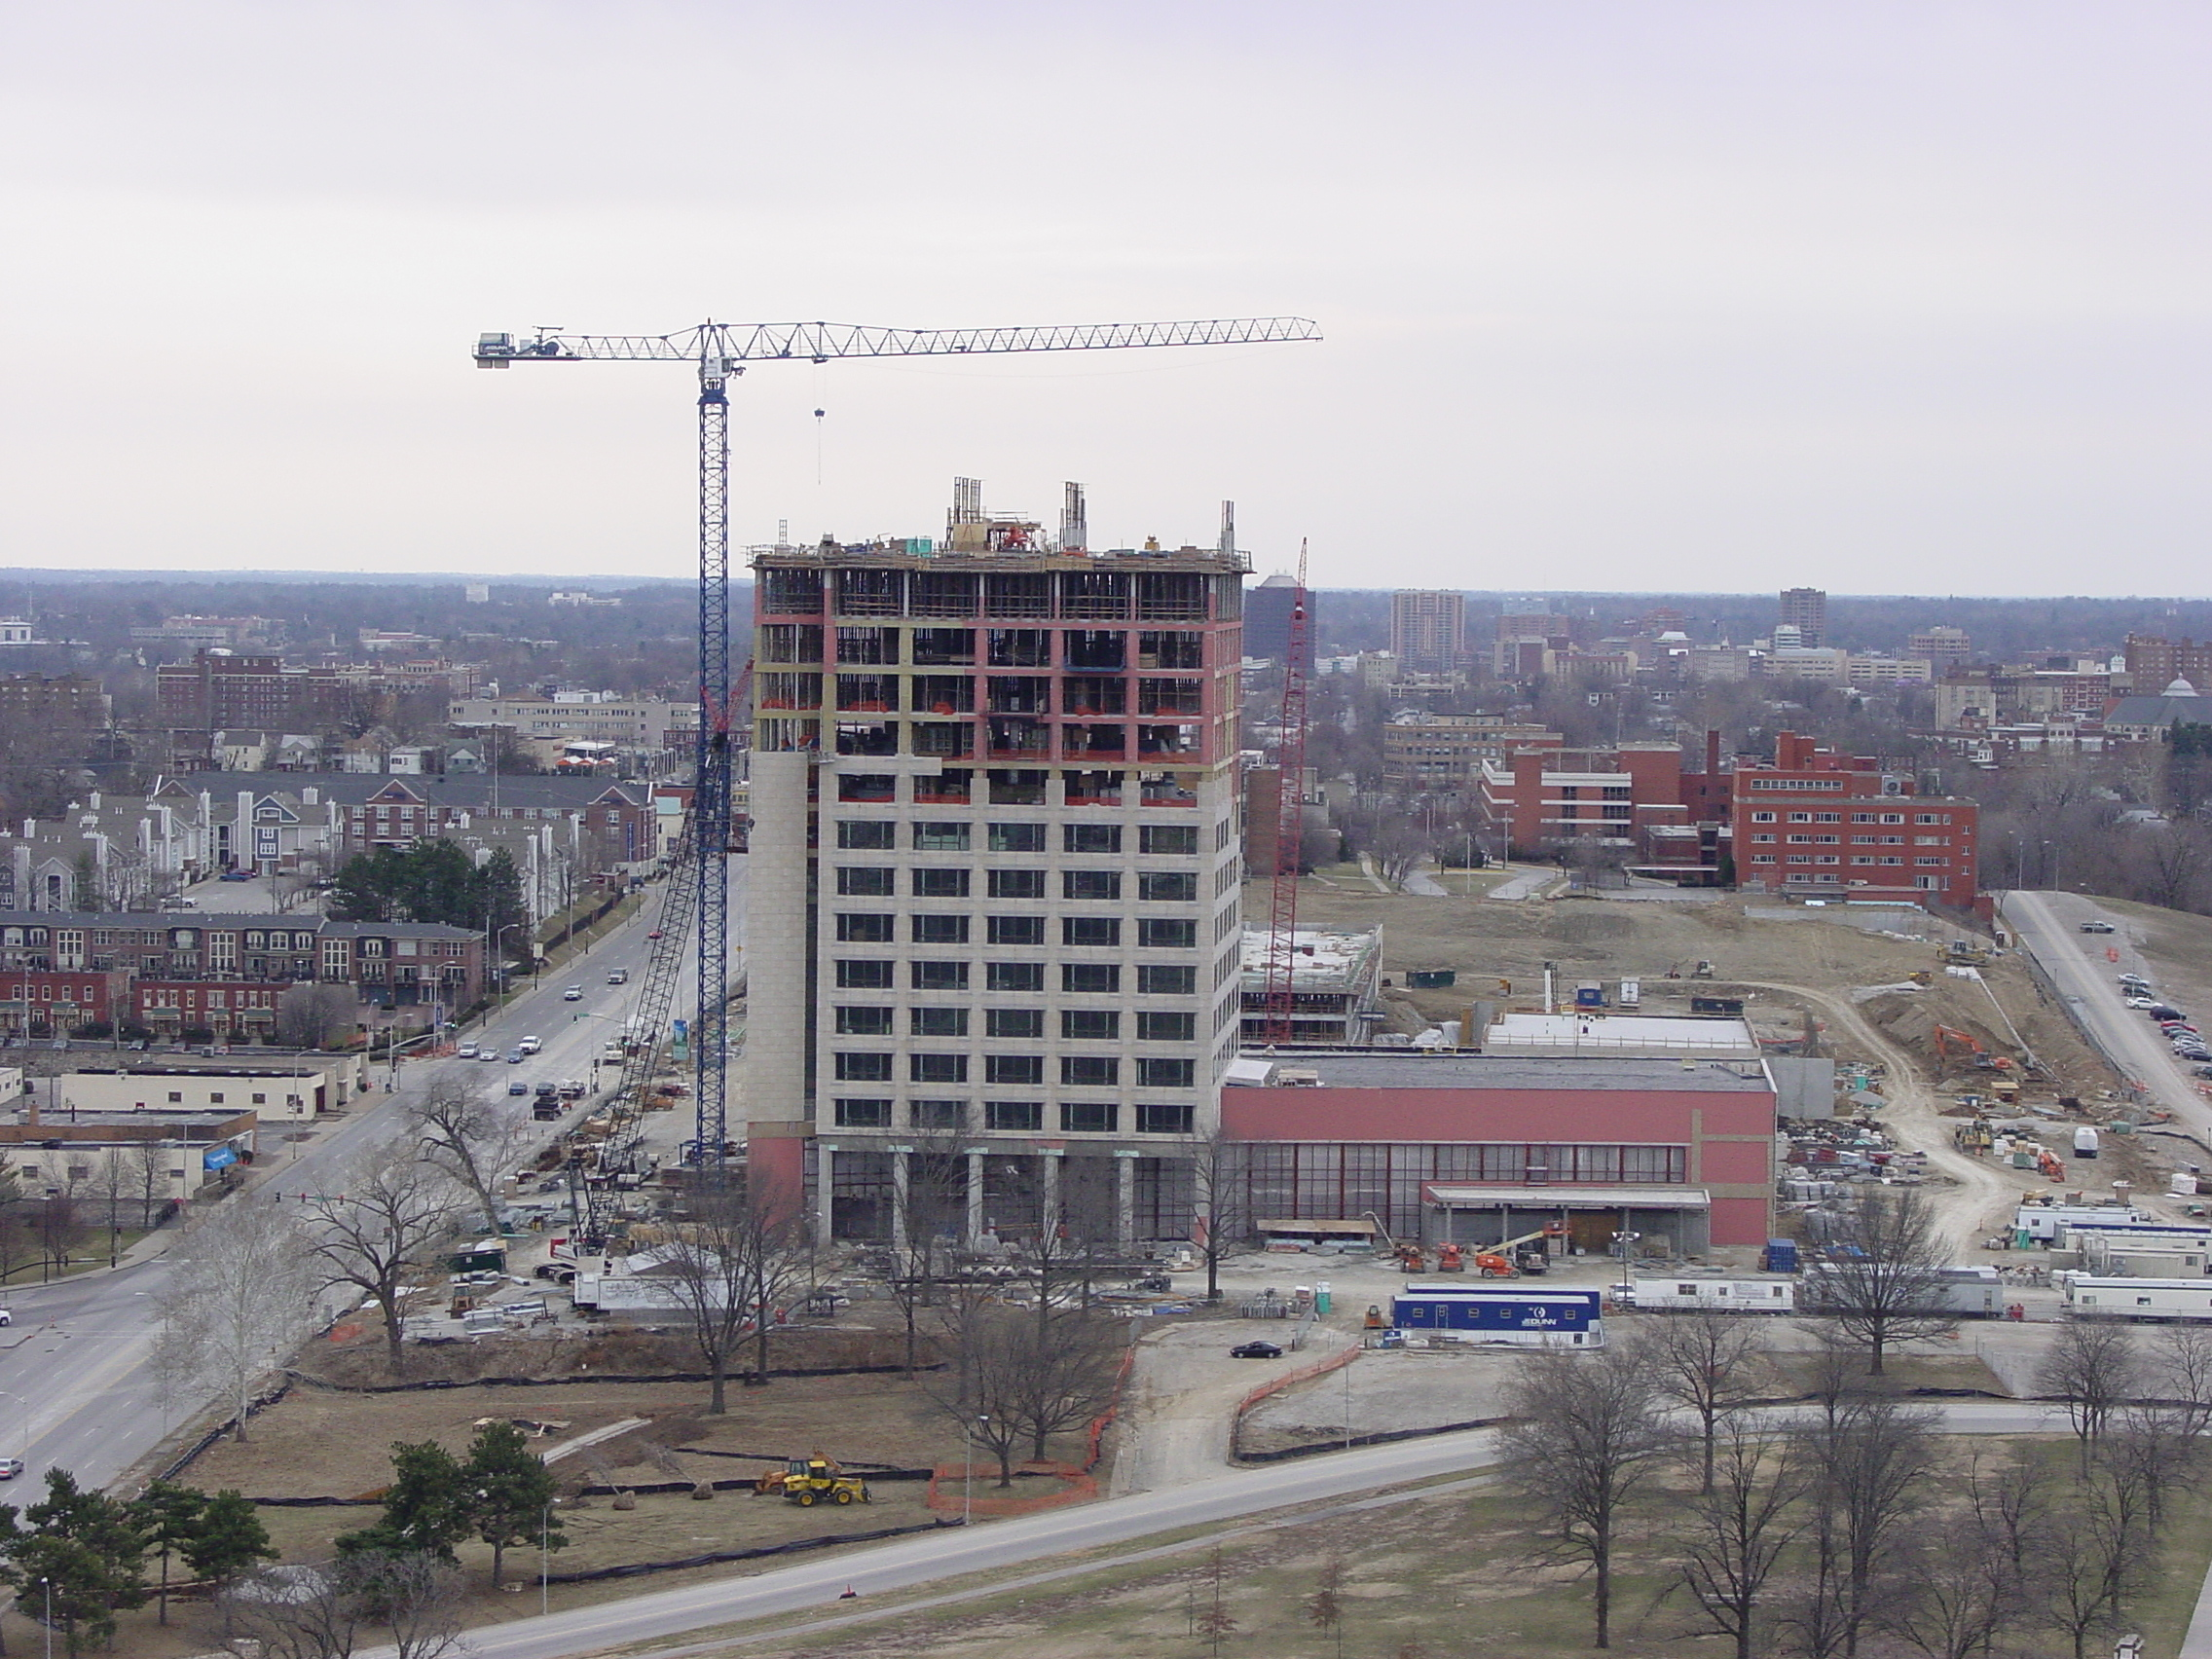 Construction on The Federal